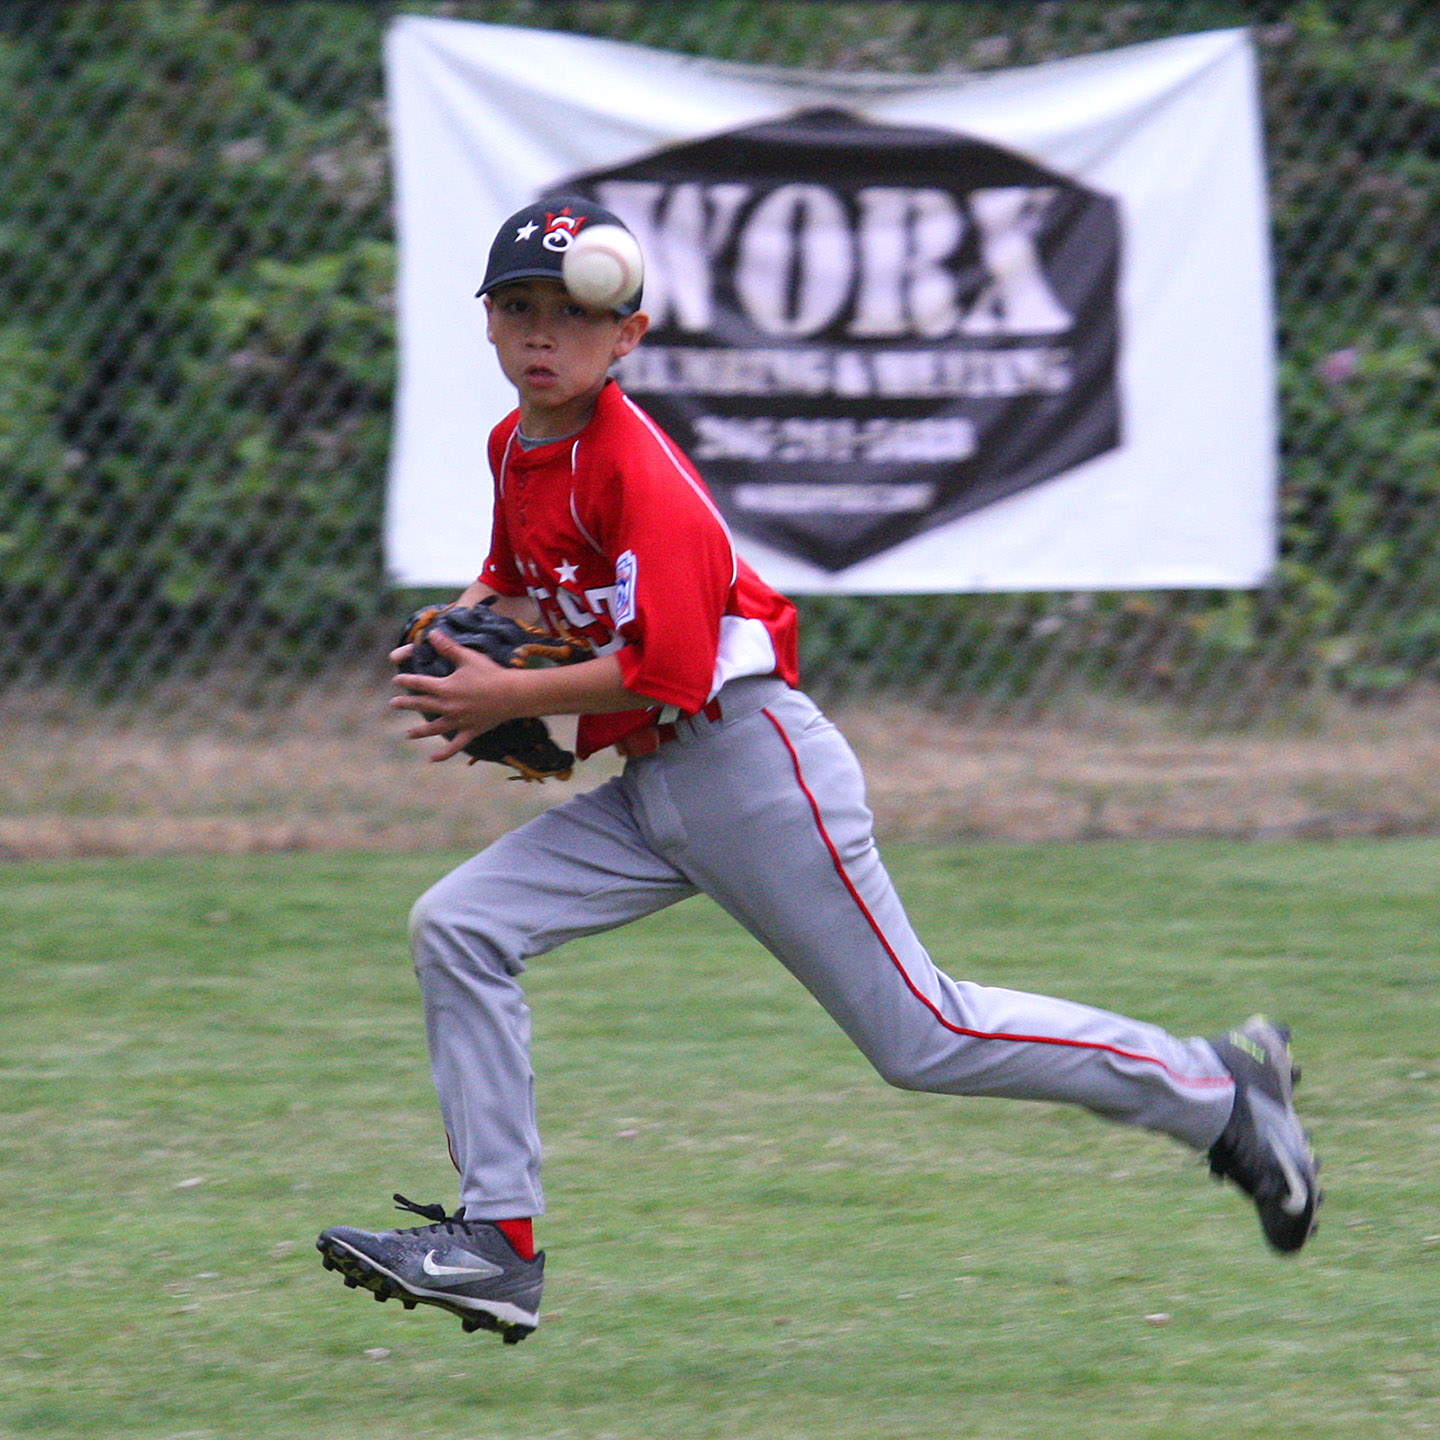 Center fielder Bryce Alonzo of West Seattle keeps his eyes on the ball.